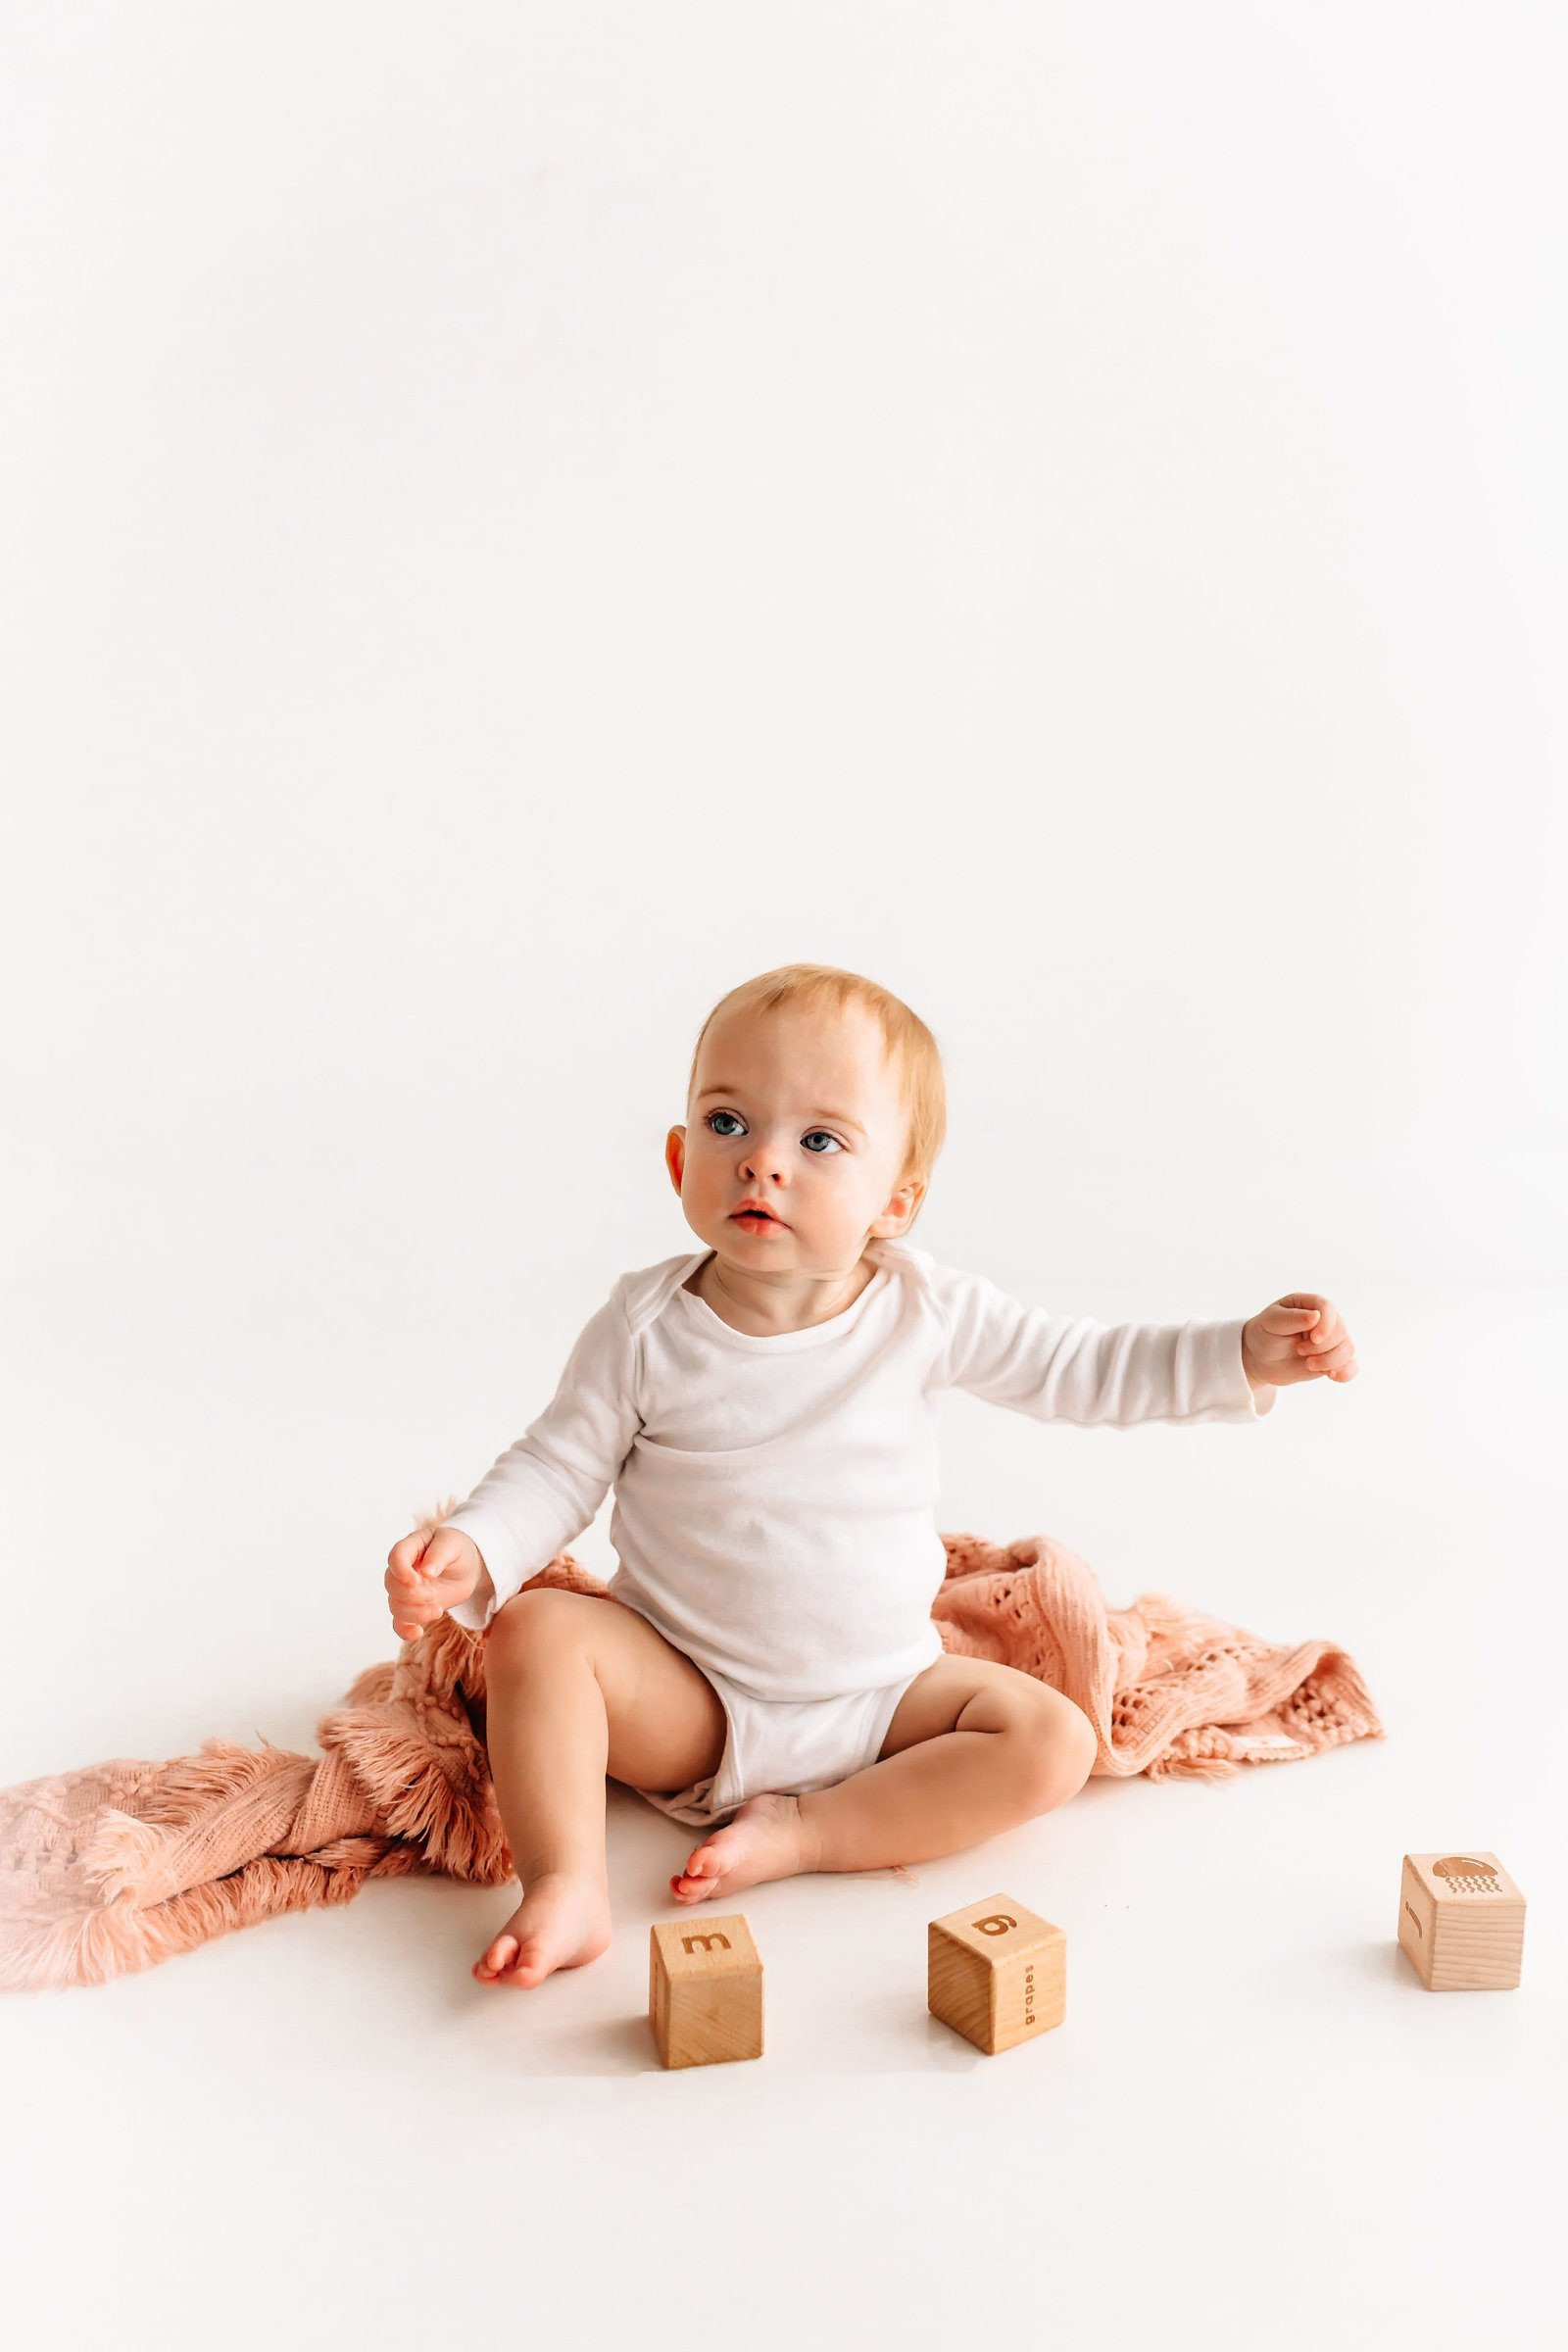 St_Louis_Baby_Photographer_Kelly_Laramore_Photography_62